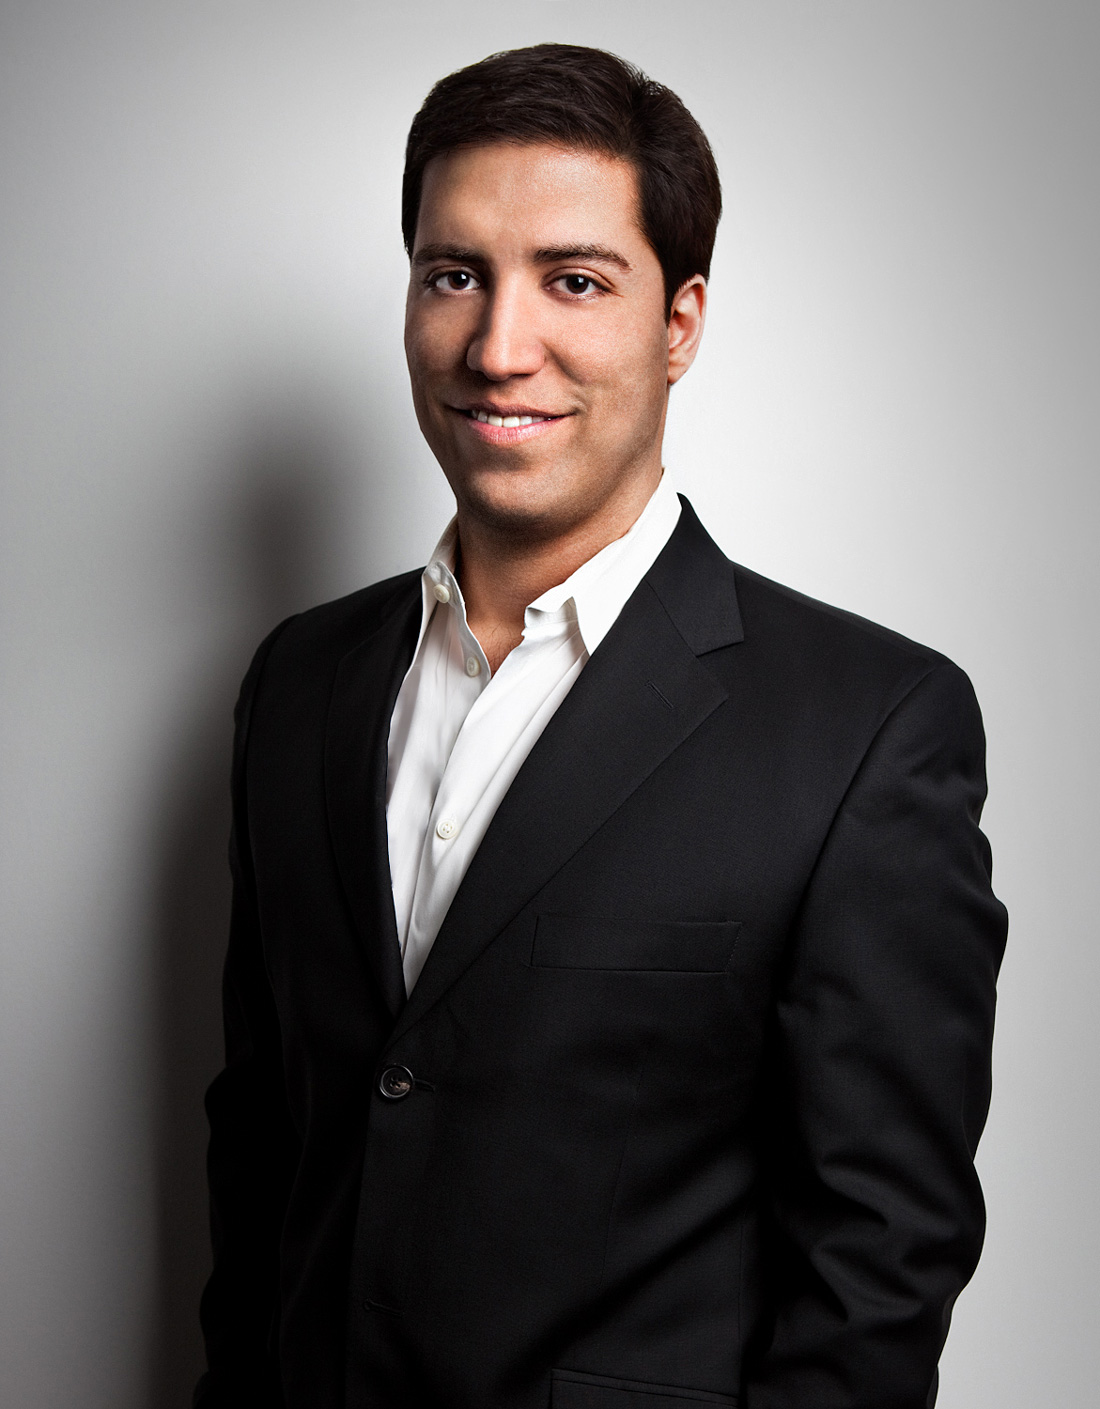 Lance Broumand, Founder & Chief Executive Officer